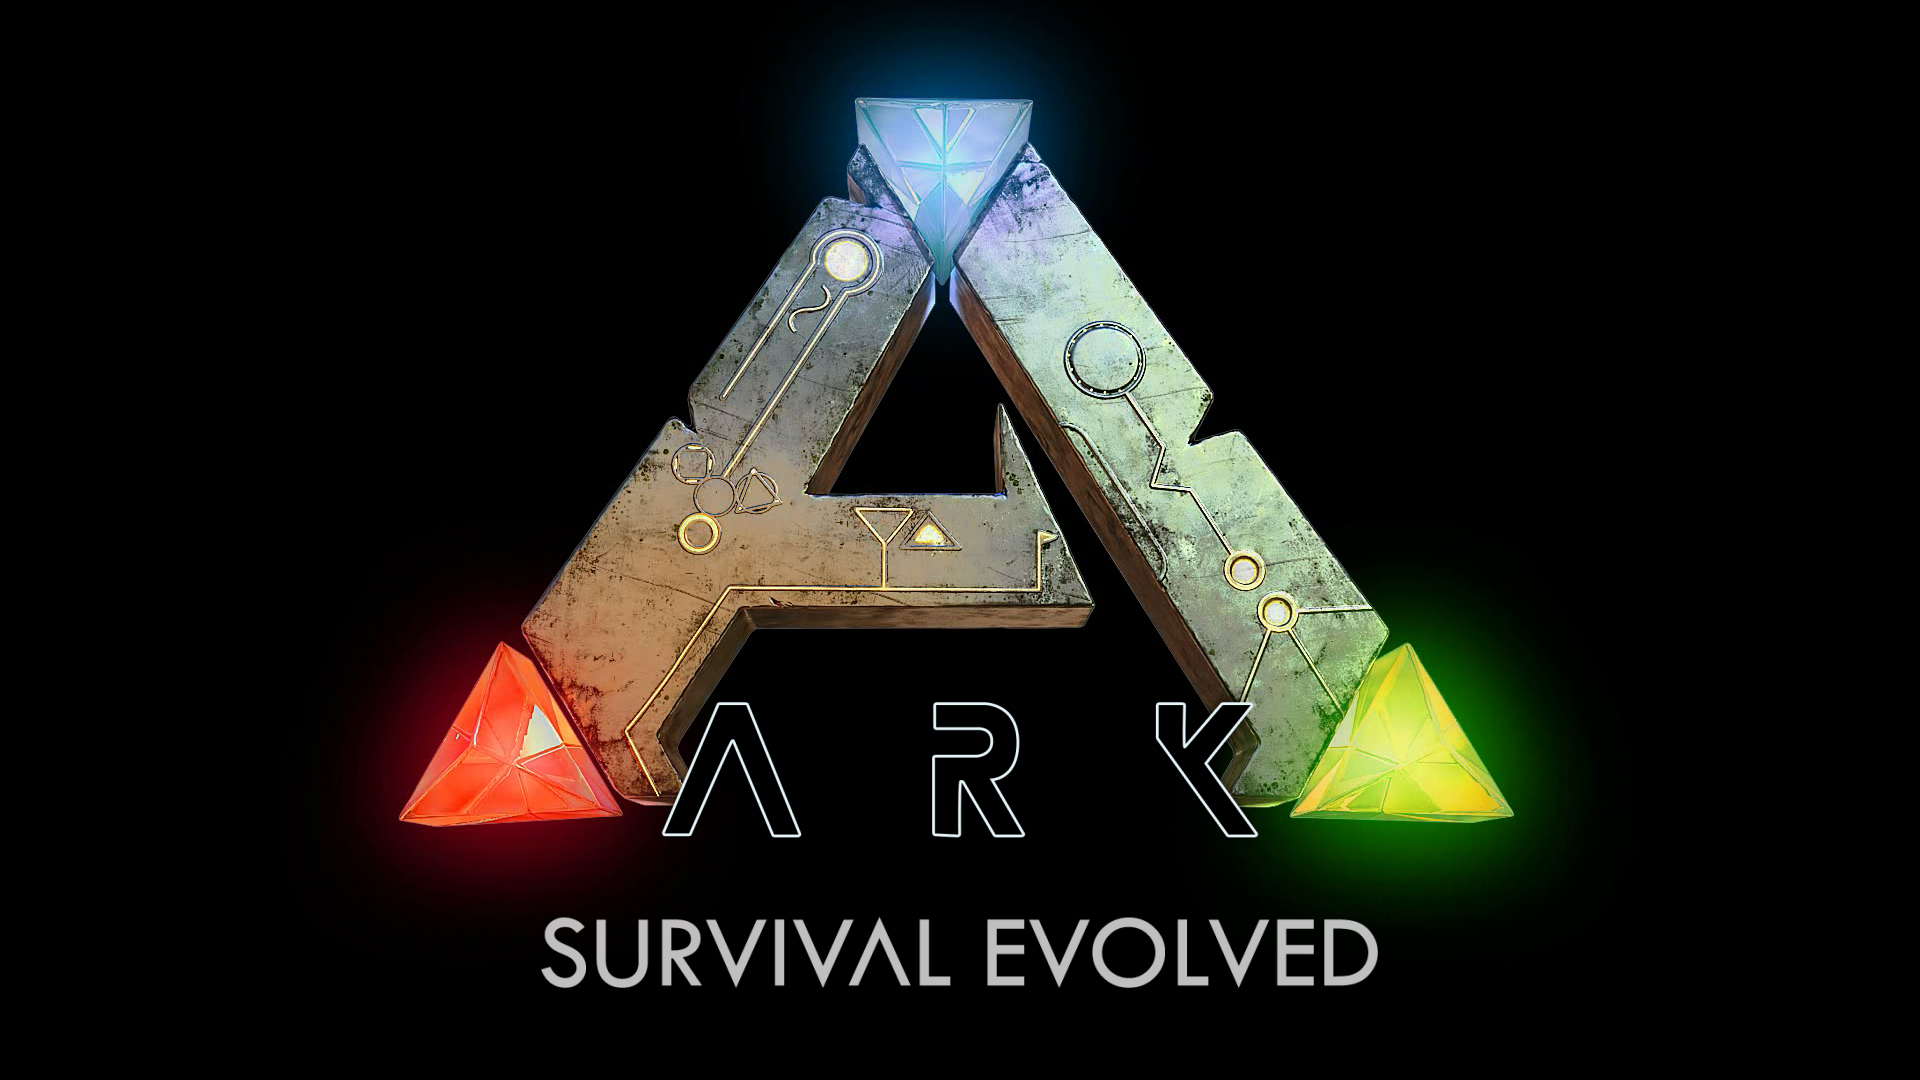 Ark survival evolved commands every big cheat for the aberration ark survival evolved commands every big cheat for the aberration dlc player malvernweather Image collections